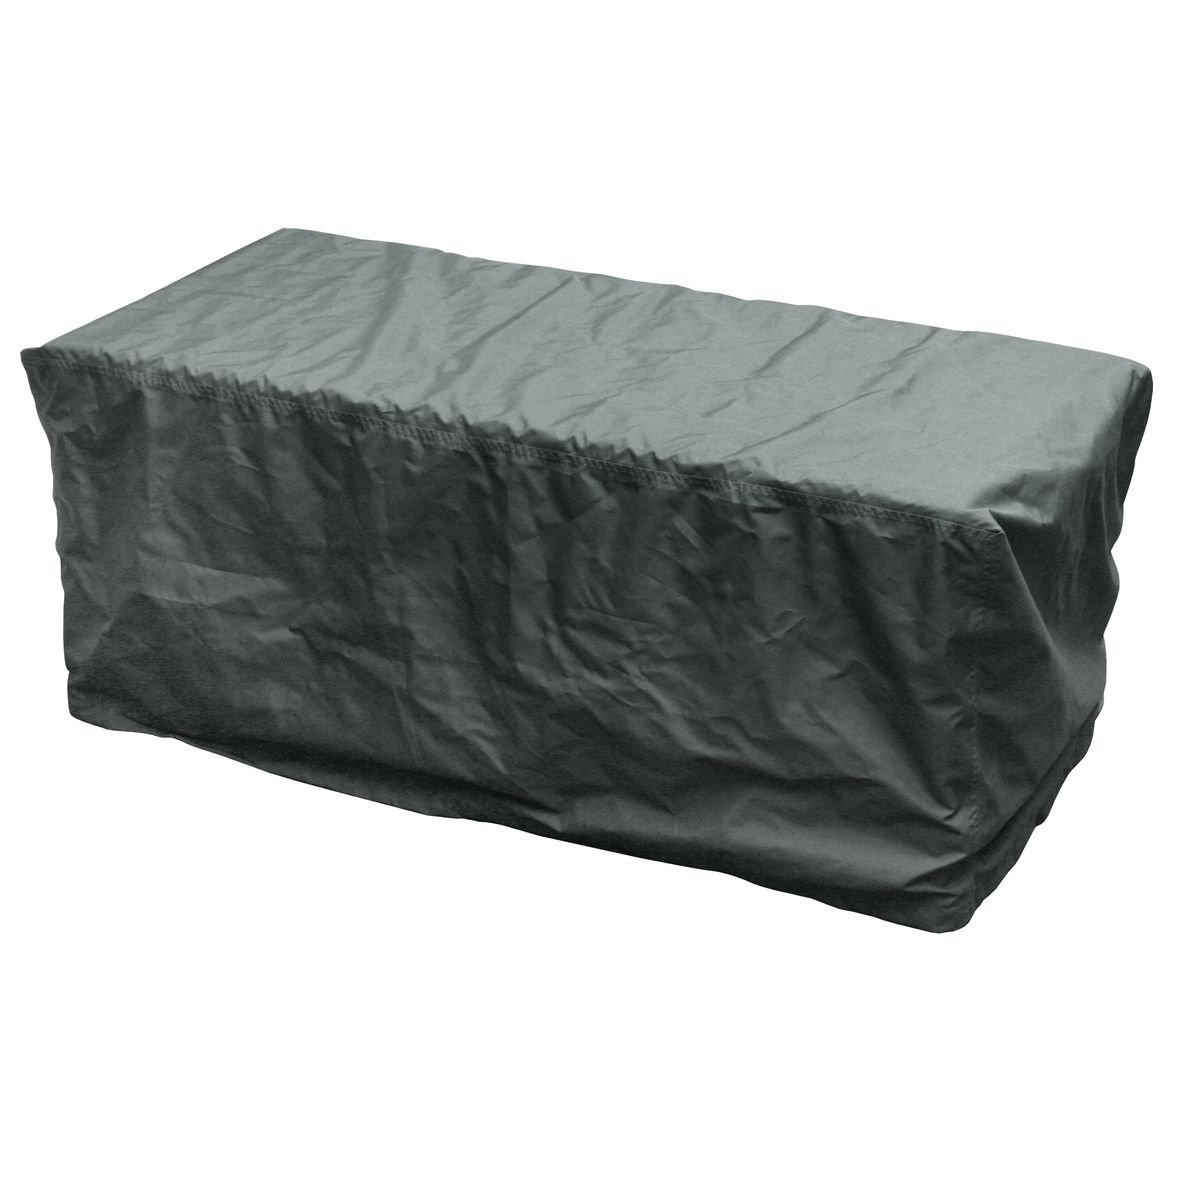 greemotion 127184 Cover for cushion box - Weather protection cover for outdoor furniture, 126 x 55 x 51 cm Testrut GmbH